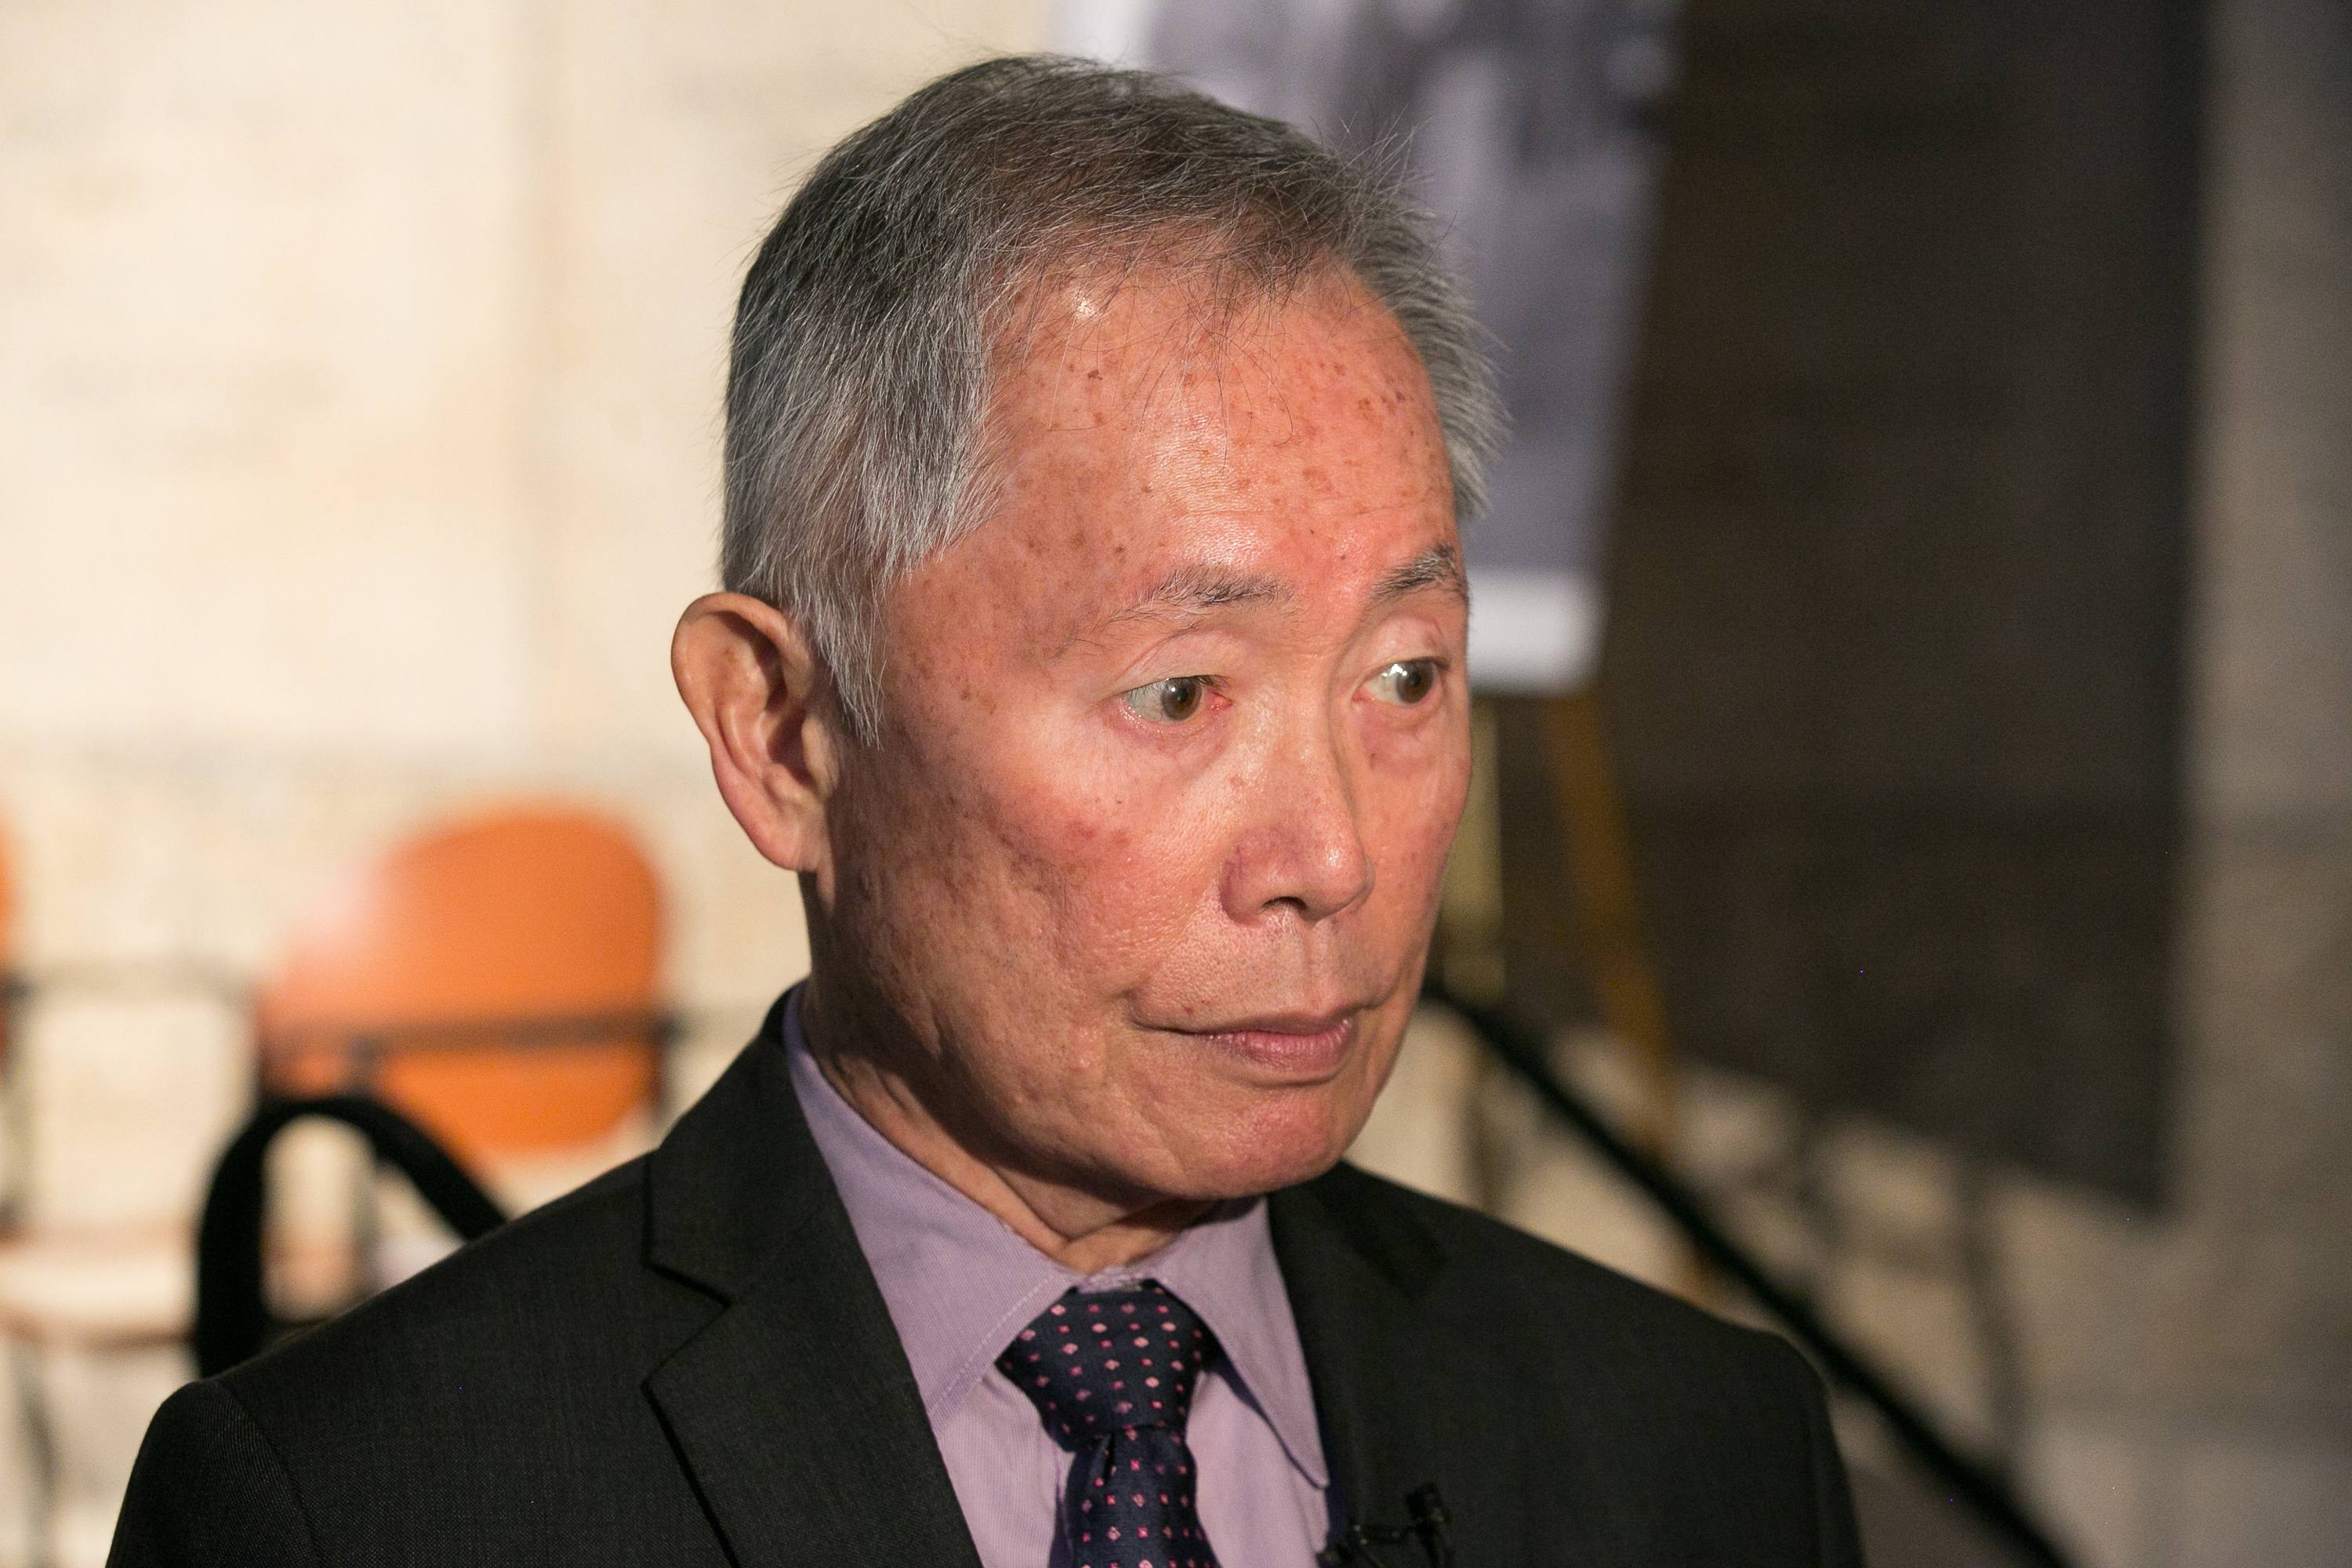 George Takei Attends Press Conference